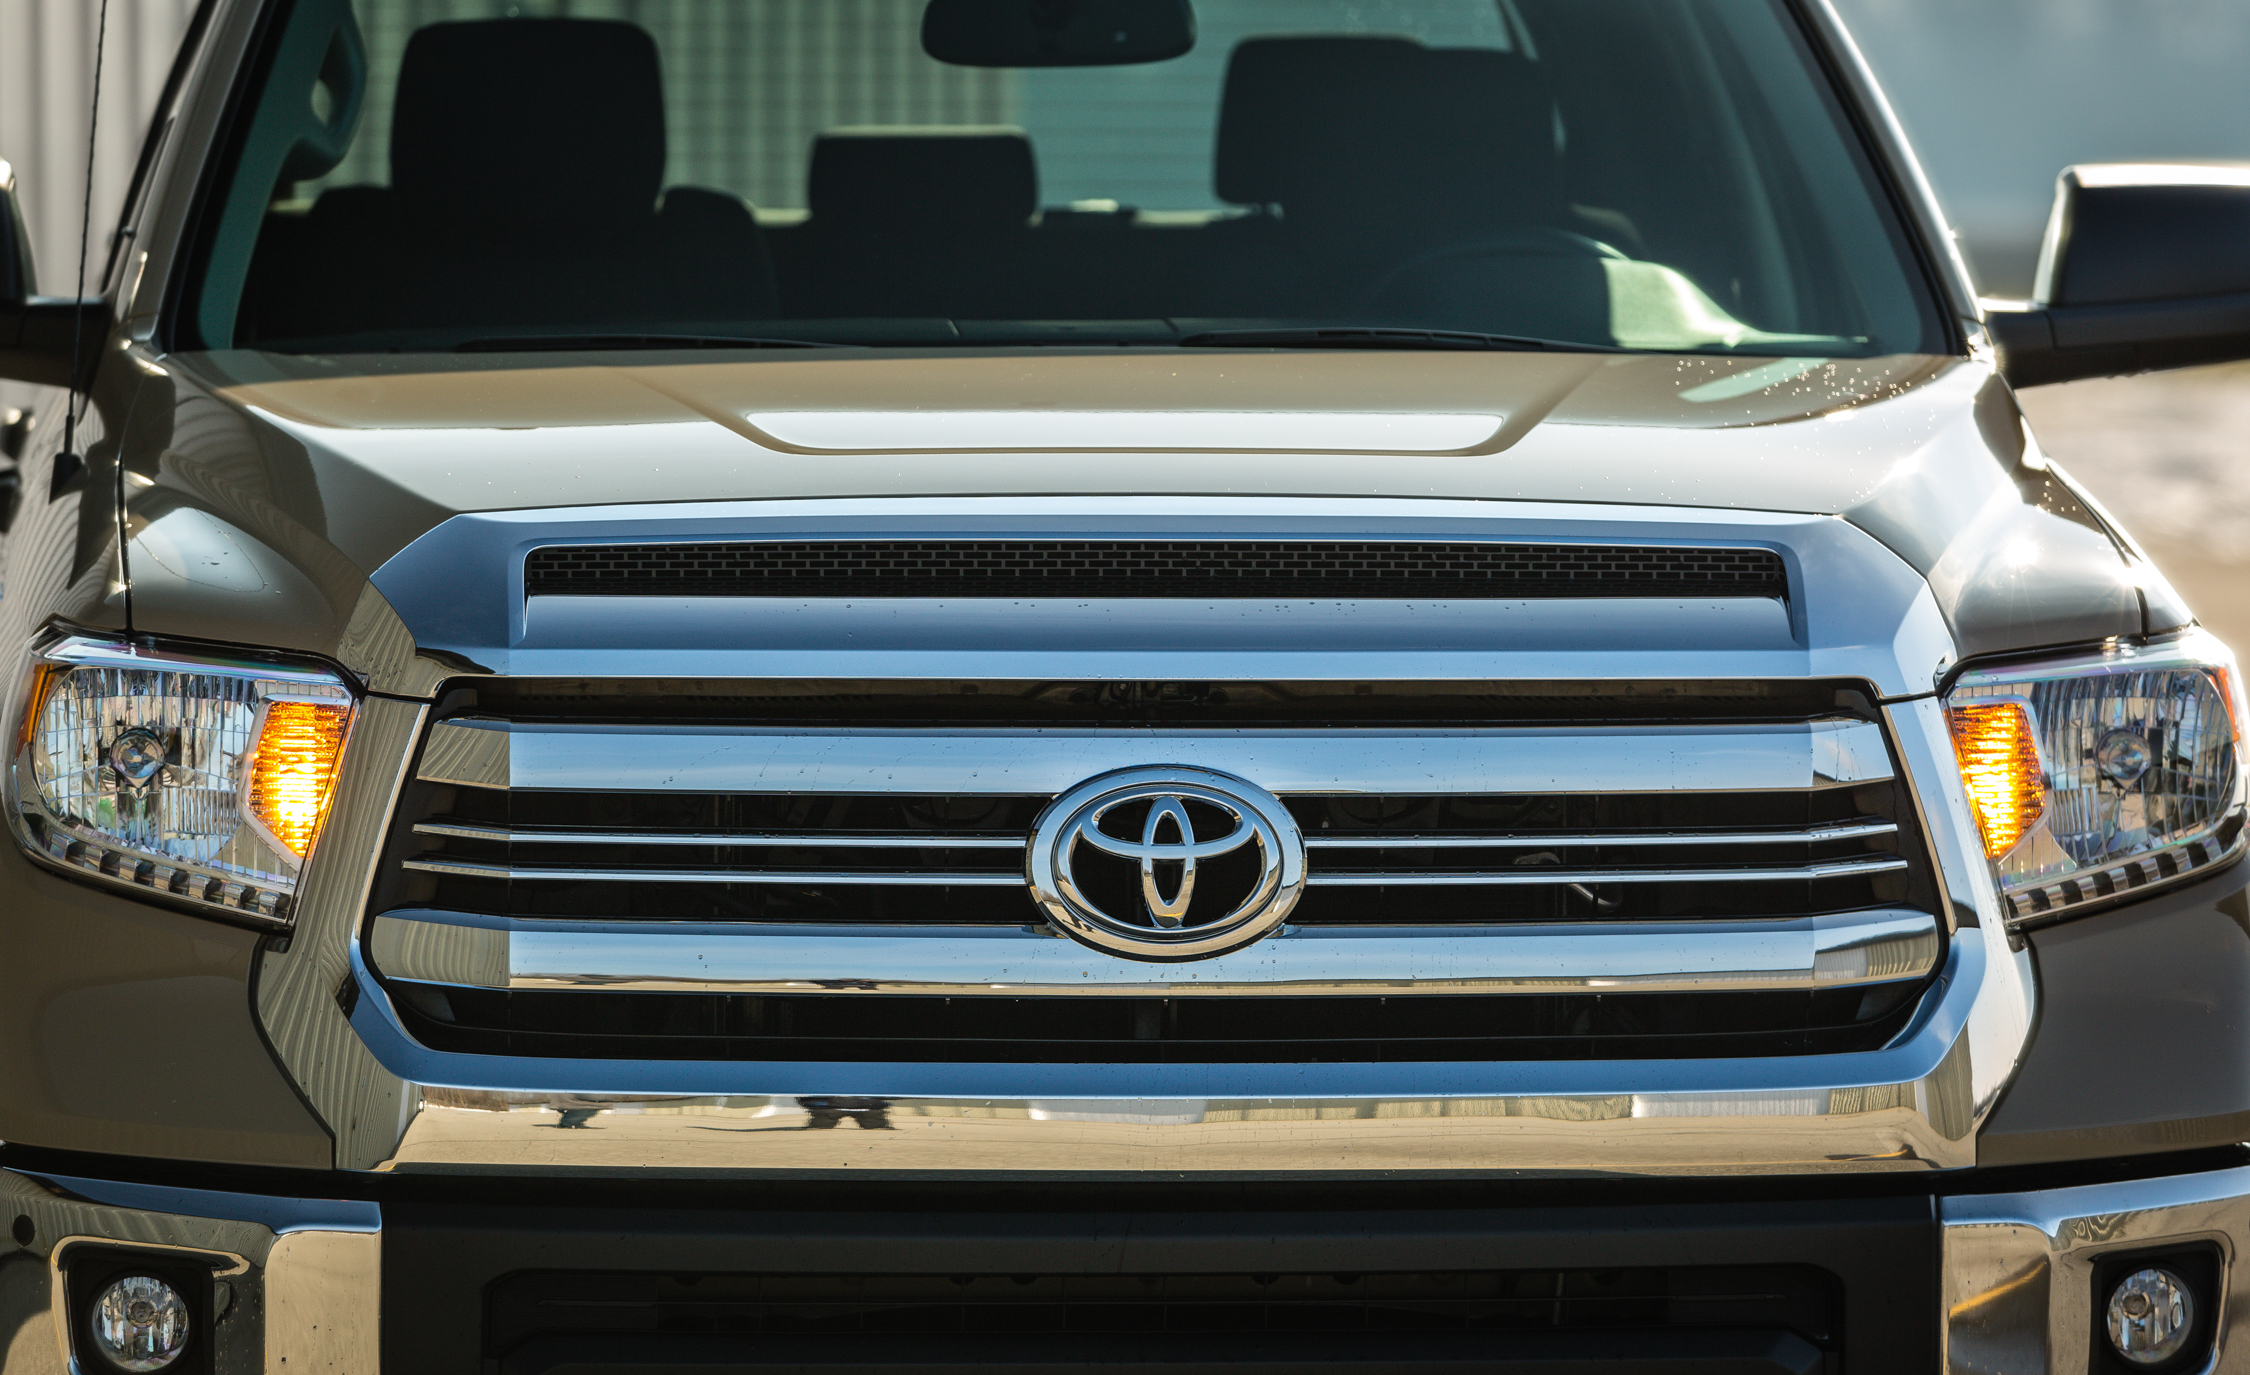 2017 Toyota Tundra Exterior View Grille (View 21 of 24)